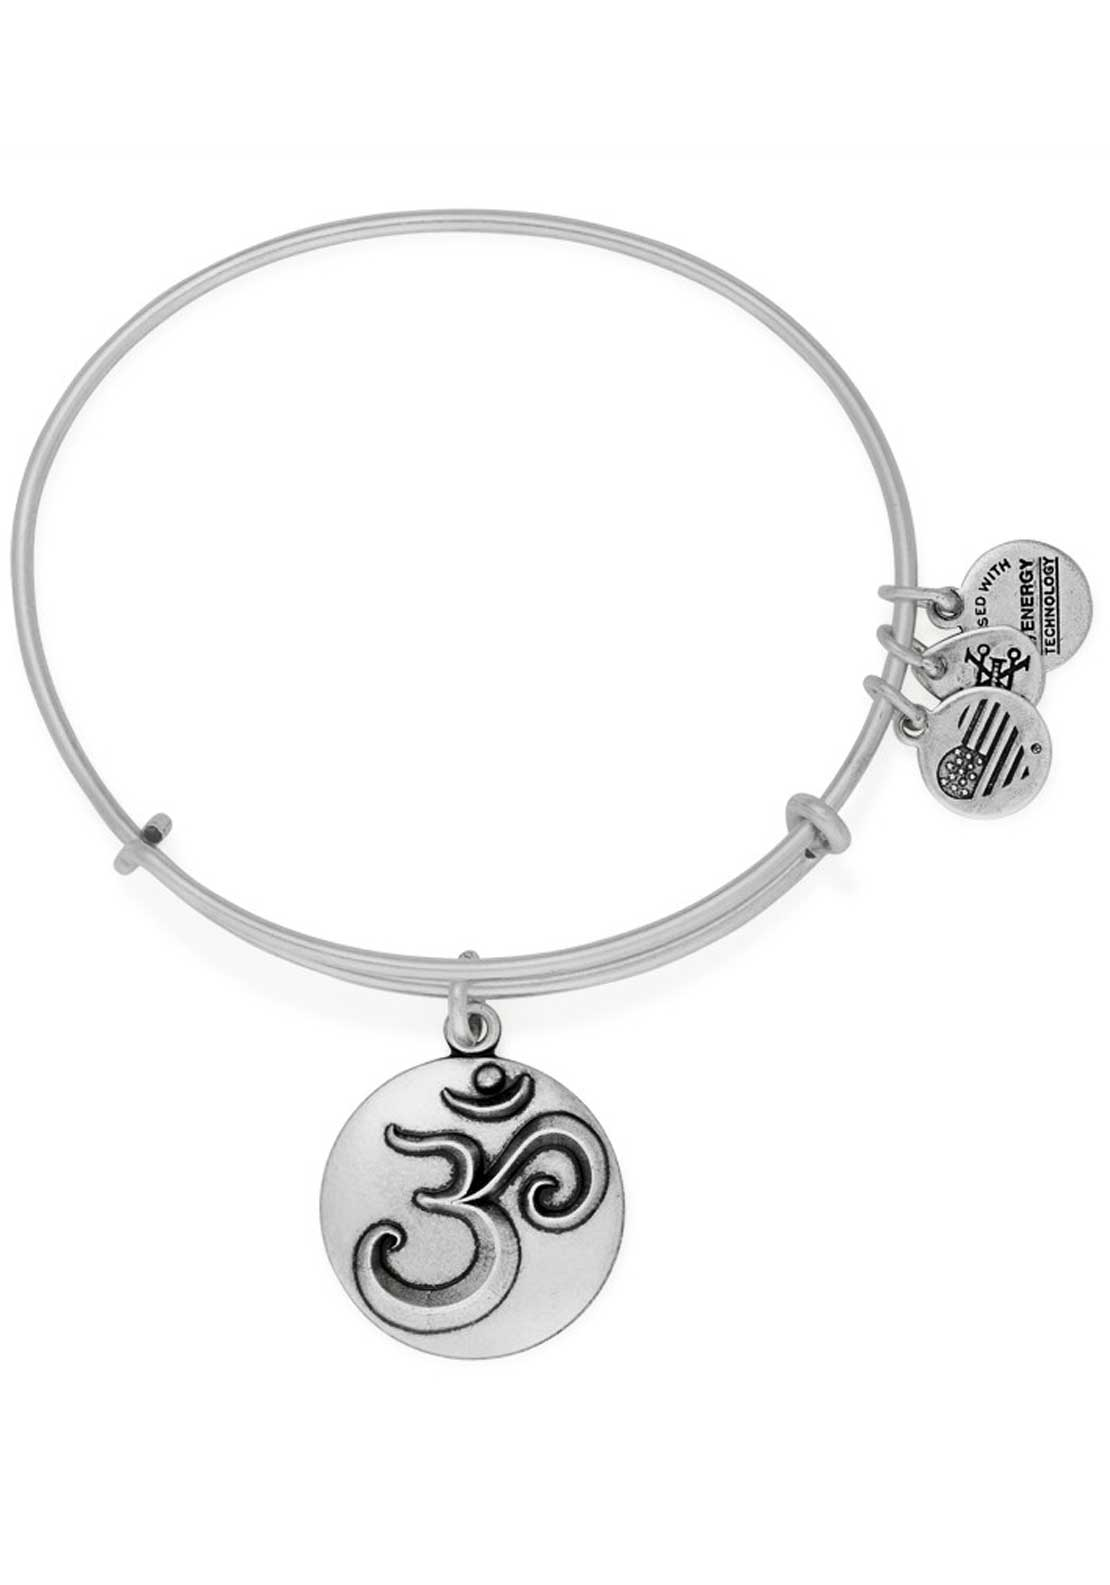 Alex and Ani Om Bracelet, Silver